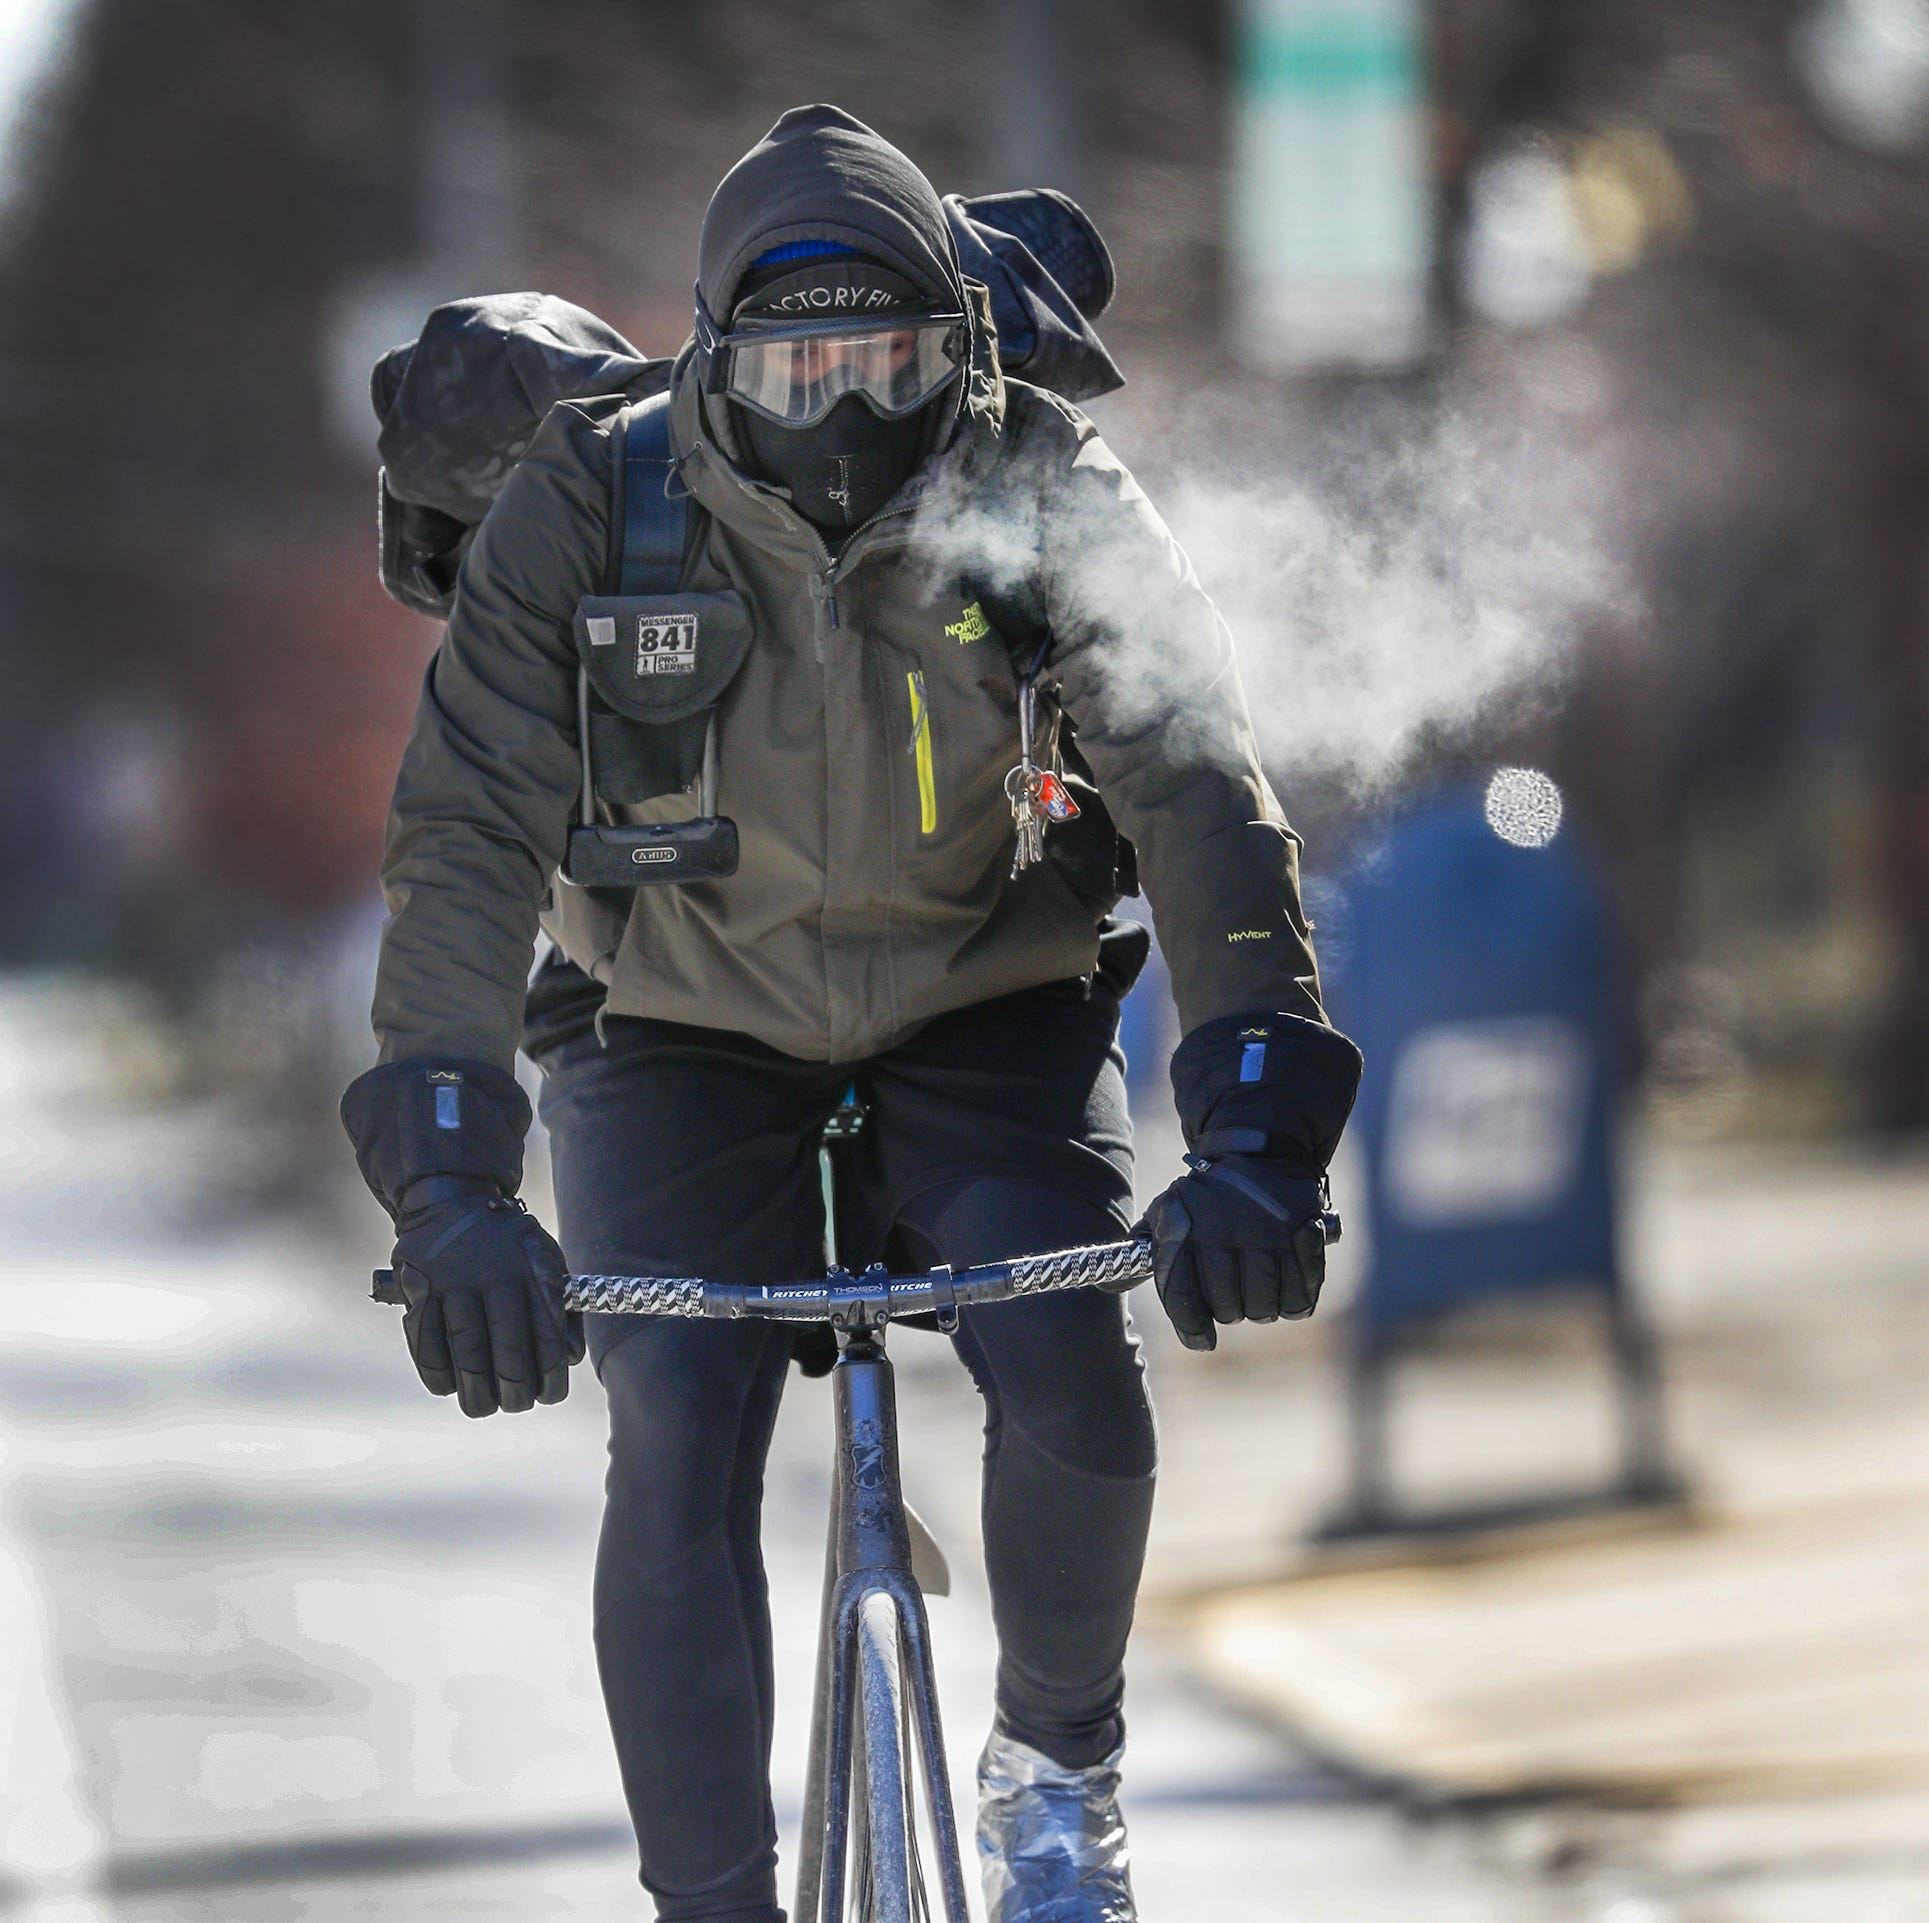 What it's like to be a bike courier in minus 39 degree wind chills